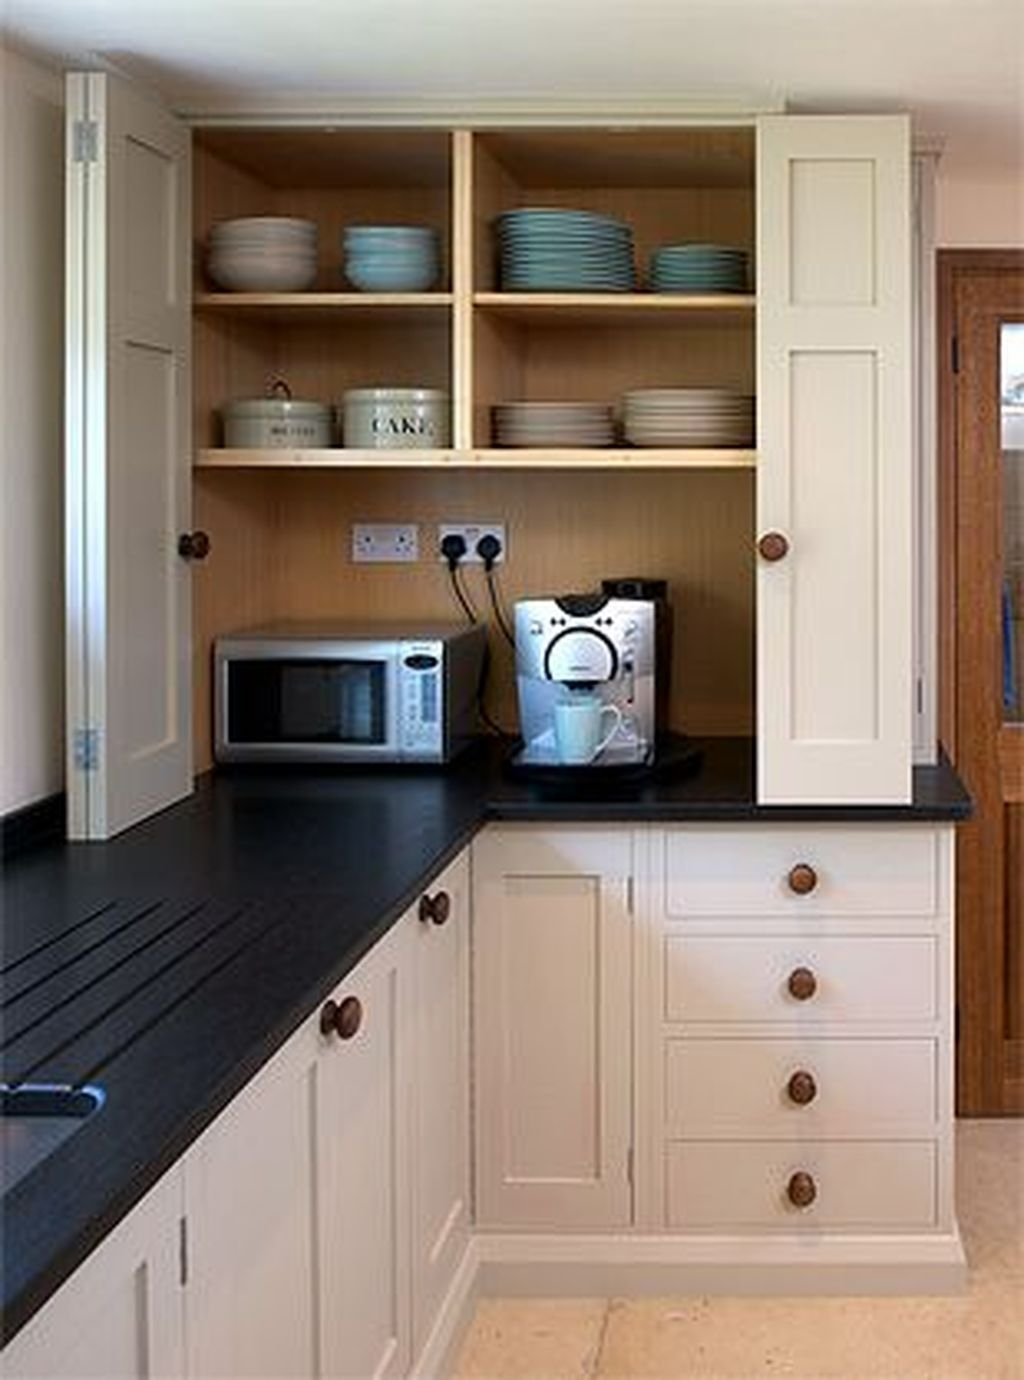 20+ Small Kitchen Ideas With French Country Style #kitchenremodelsmall